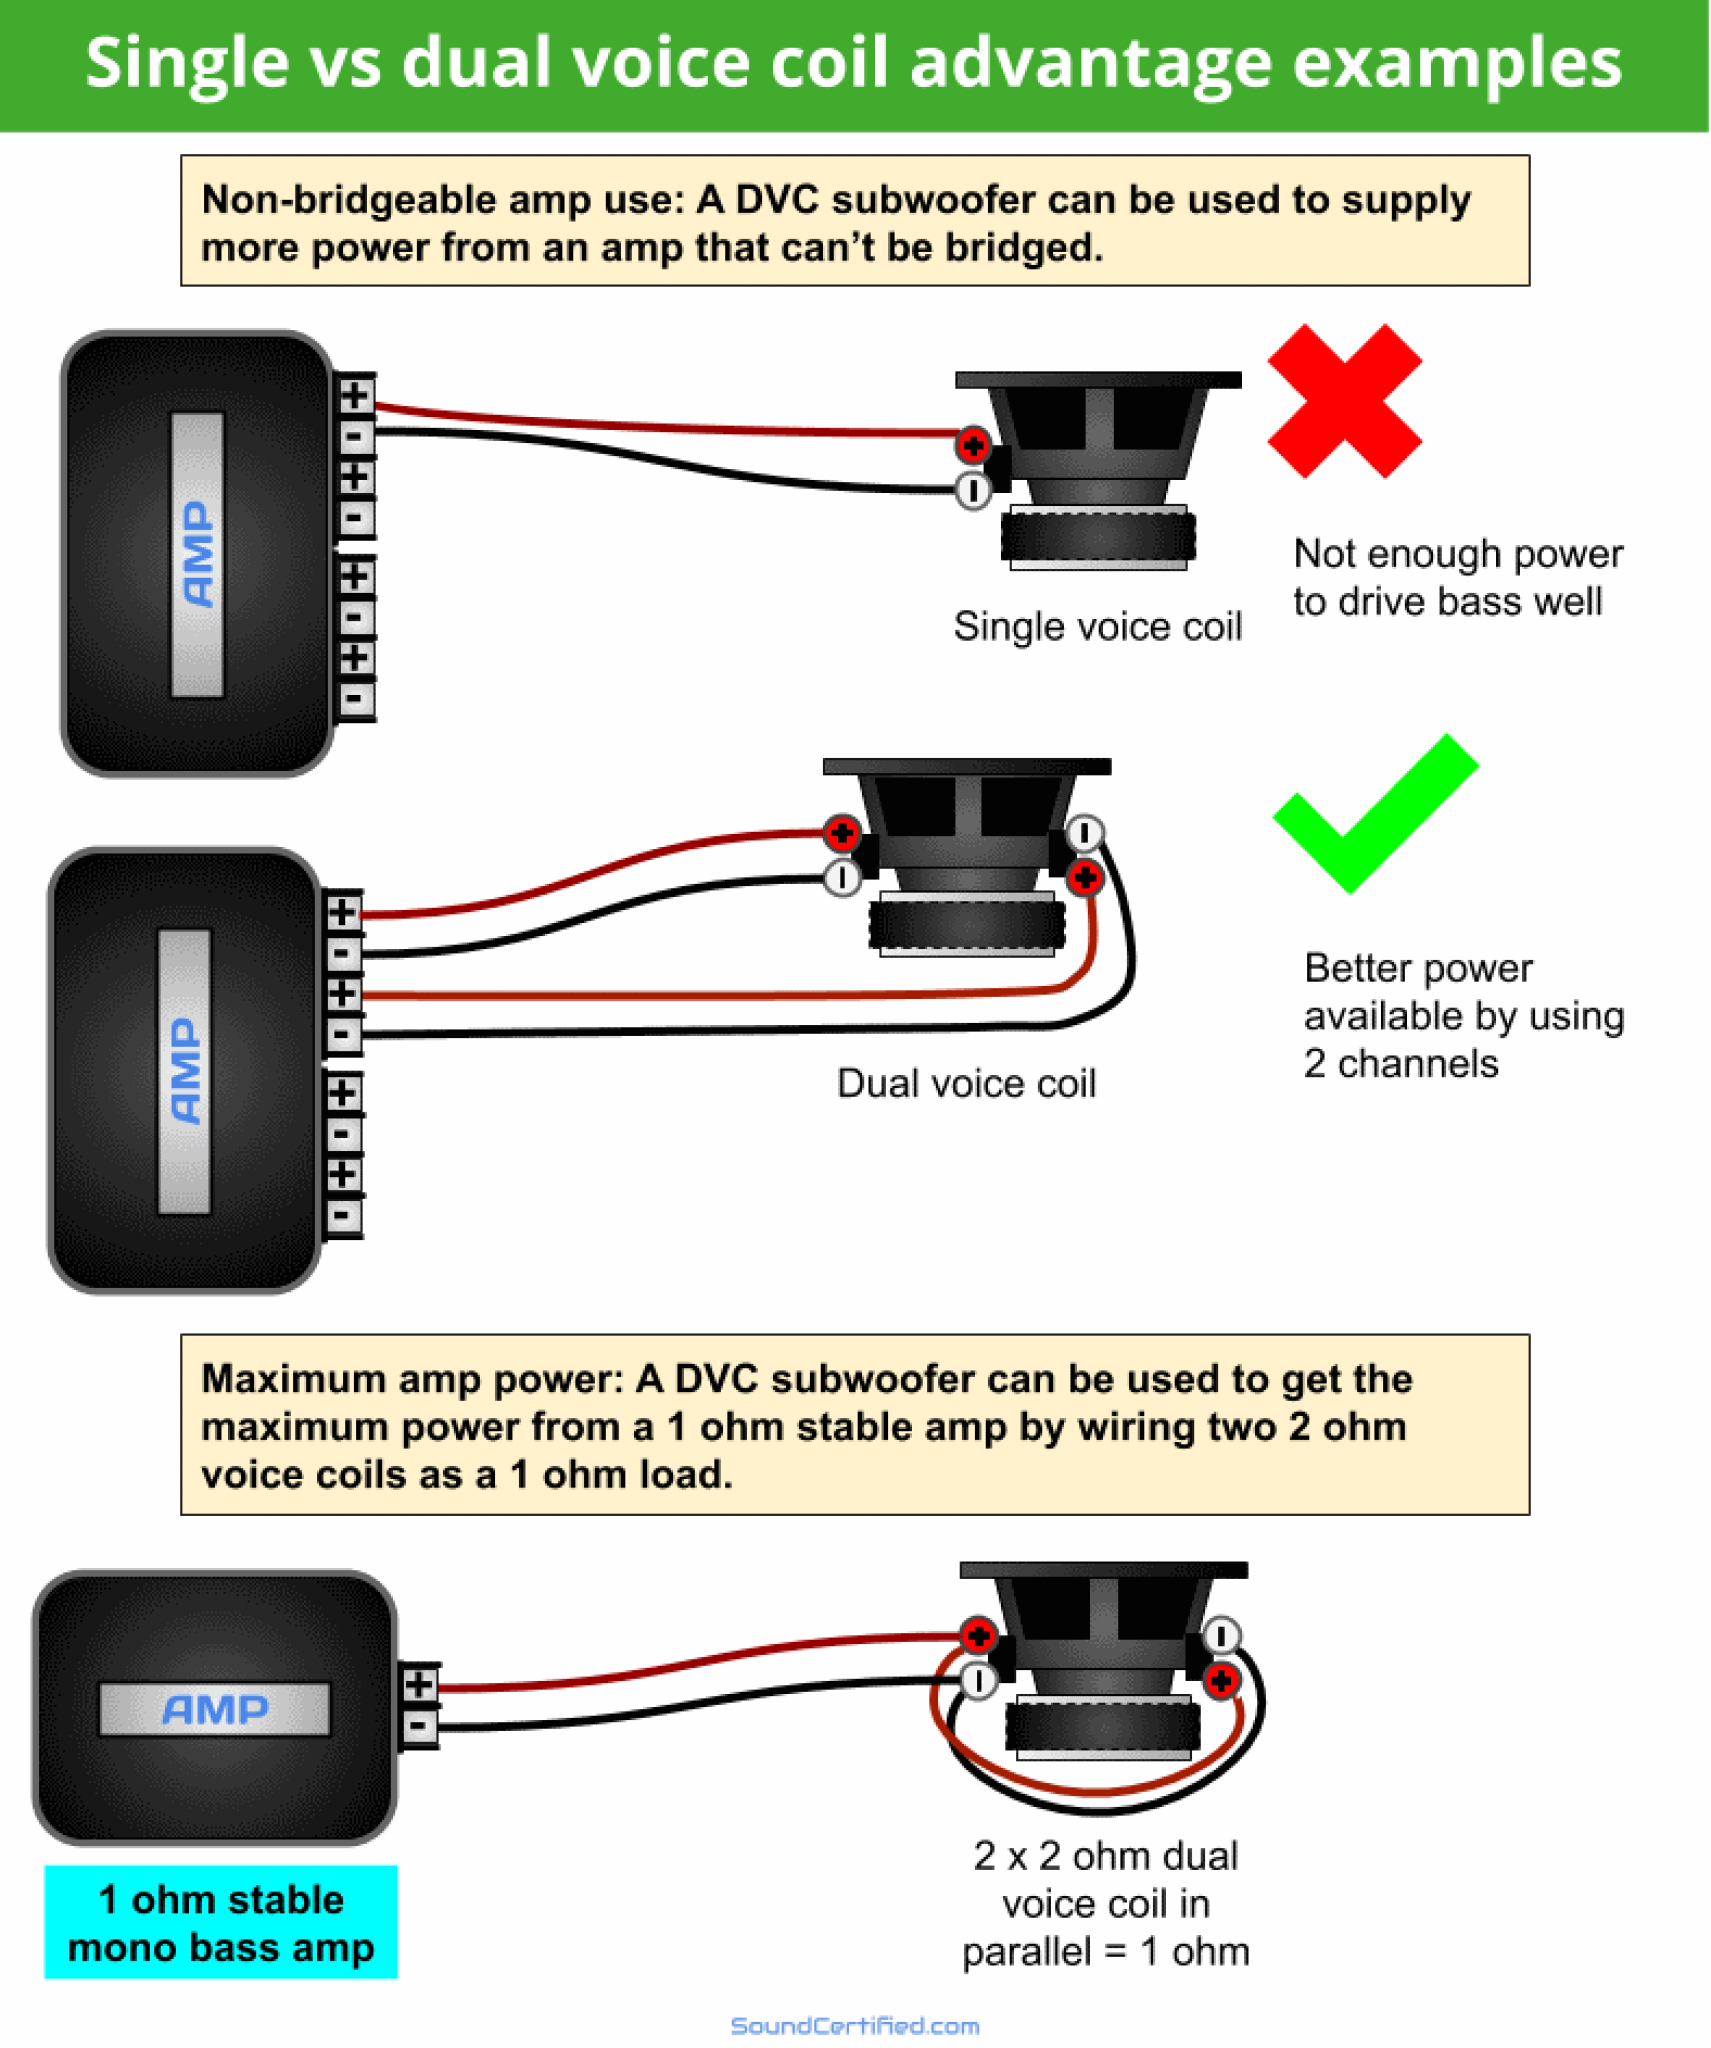 How To Wire A Dual Voice Coil Speaker Subwoofer Wiring Diagrams In 2021 Subwoofer Wiring Subwoofer Car Stereo Systems